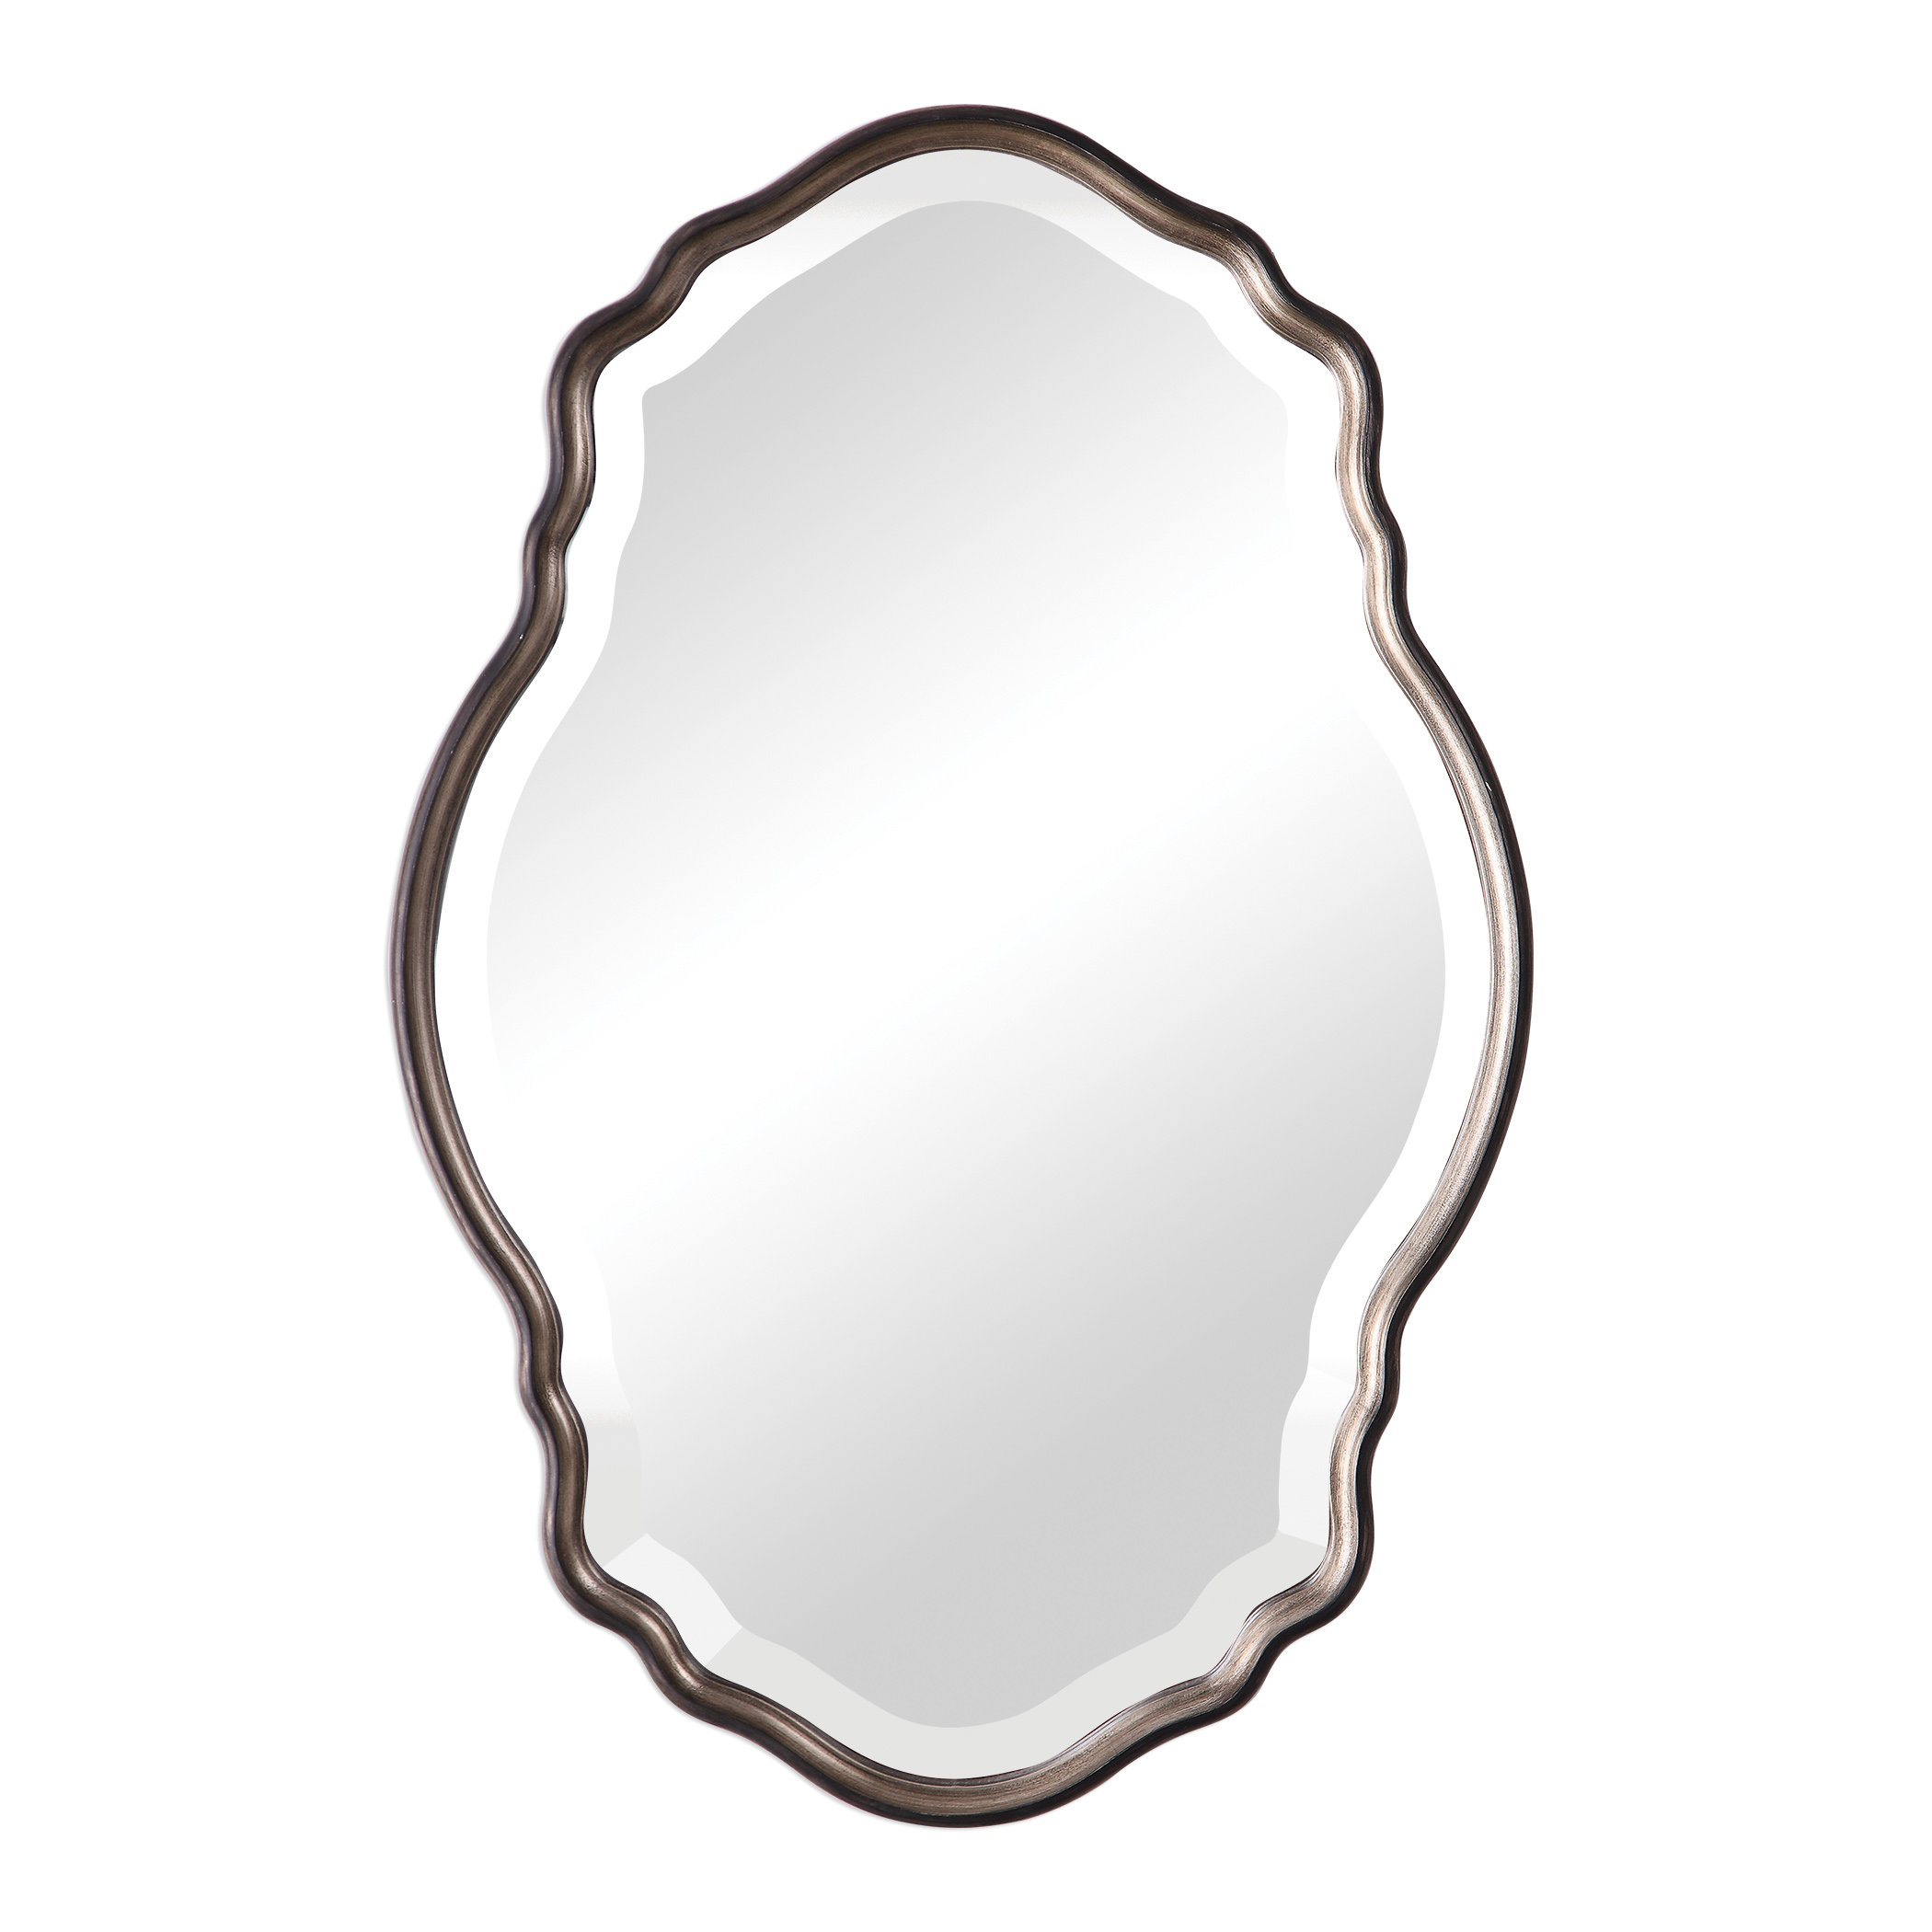 Christner Modern & Contemporary Beveled Wall Mirror Pertaining To Guidinha Modern & Contemporary Accent Mirrors (View 22 of 30)